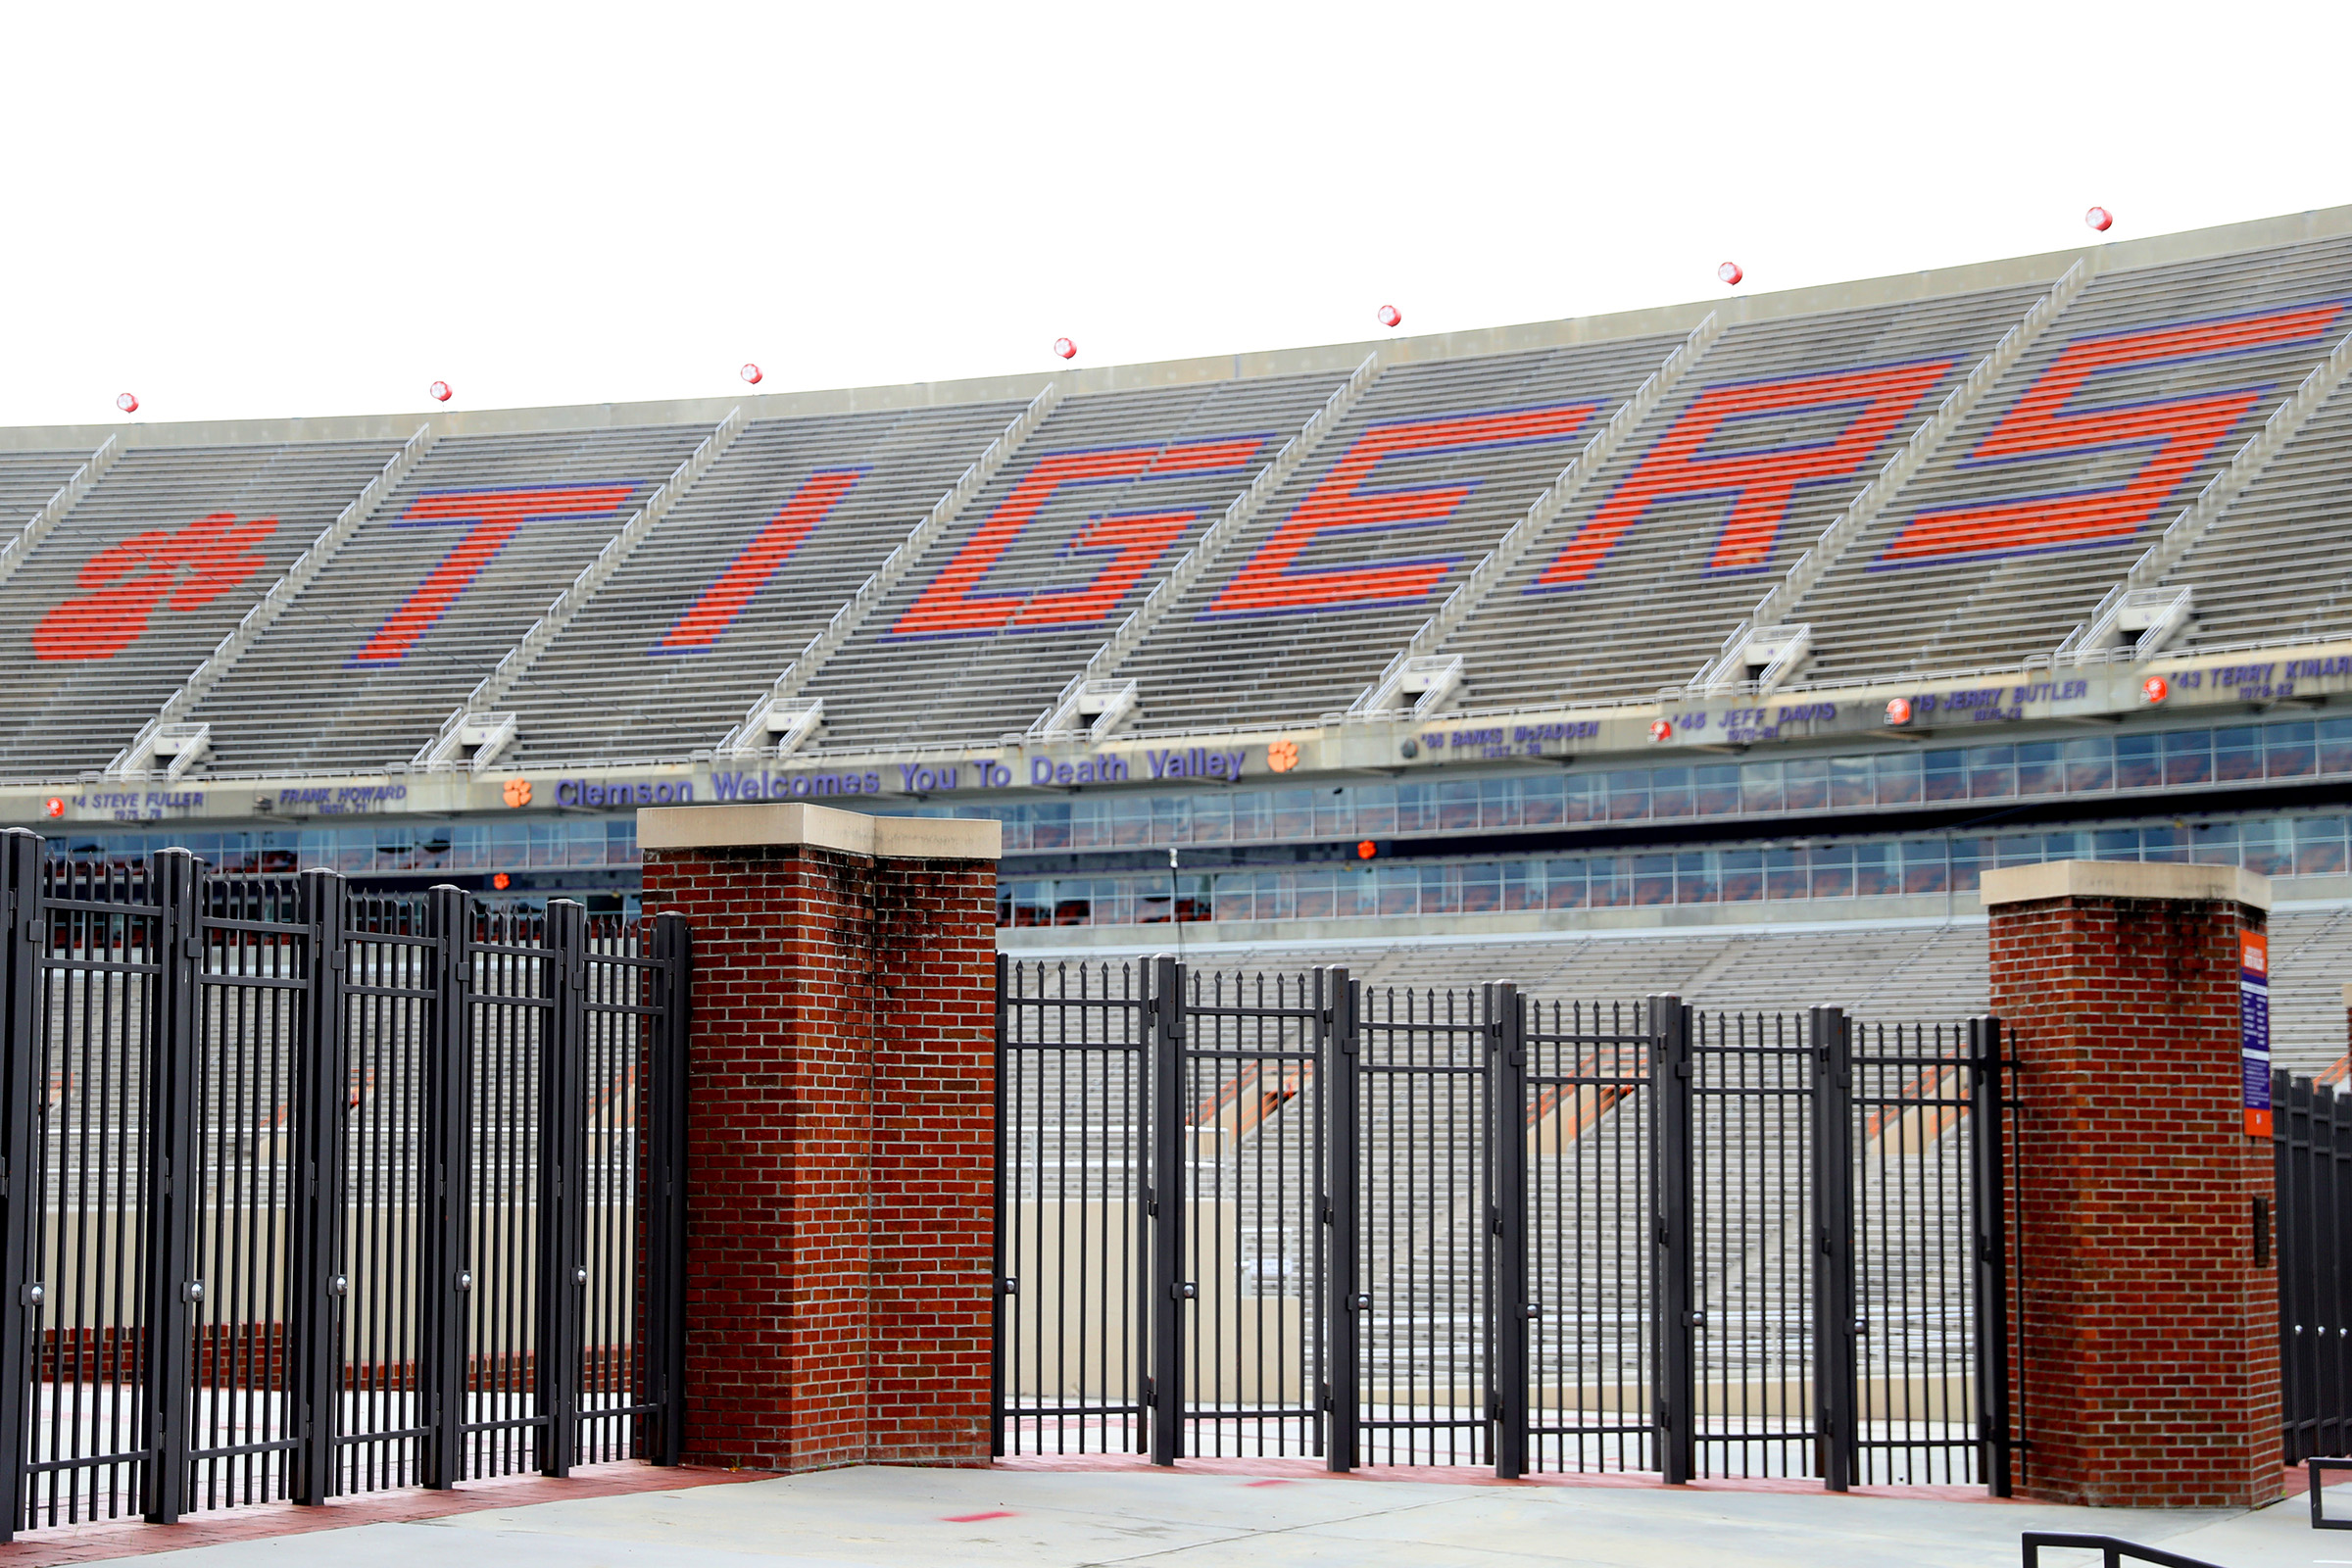 A view empty stands inside of Clemson Memorial Stadium on the campus of Clemson University on June 10, 2020 in Clemson, South Carolina. The campus remains open in a limited capacity due to the Coronavirus (COVID-19) pandemic.